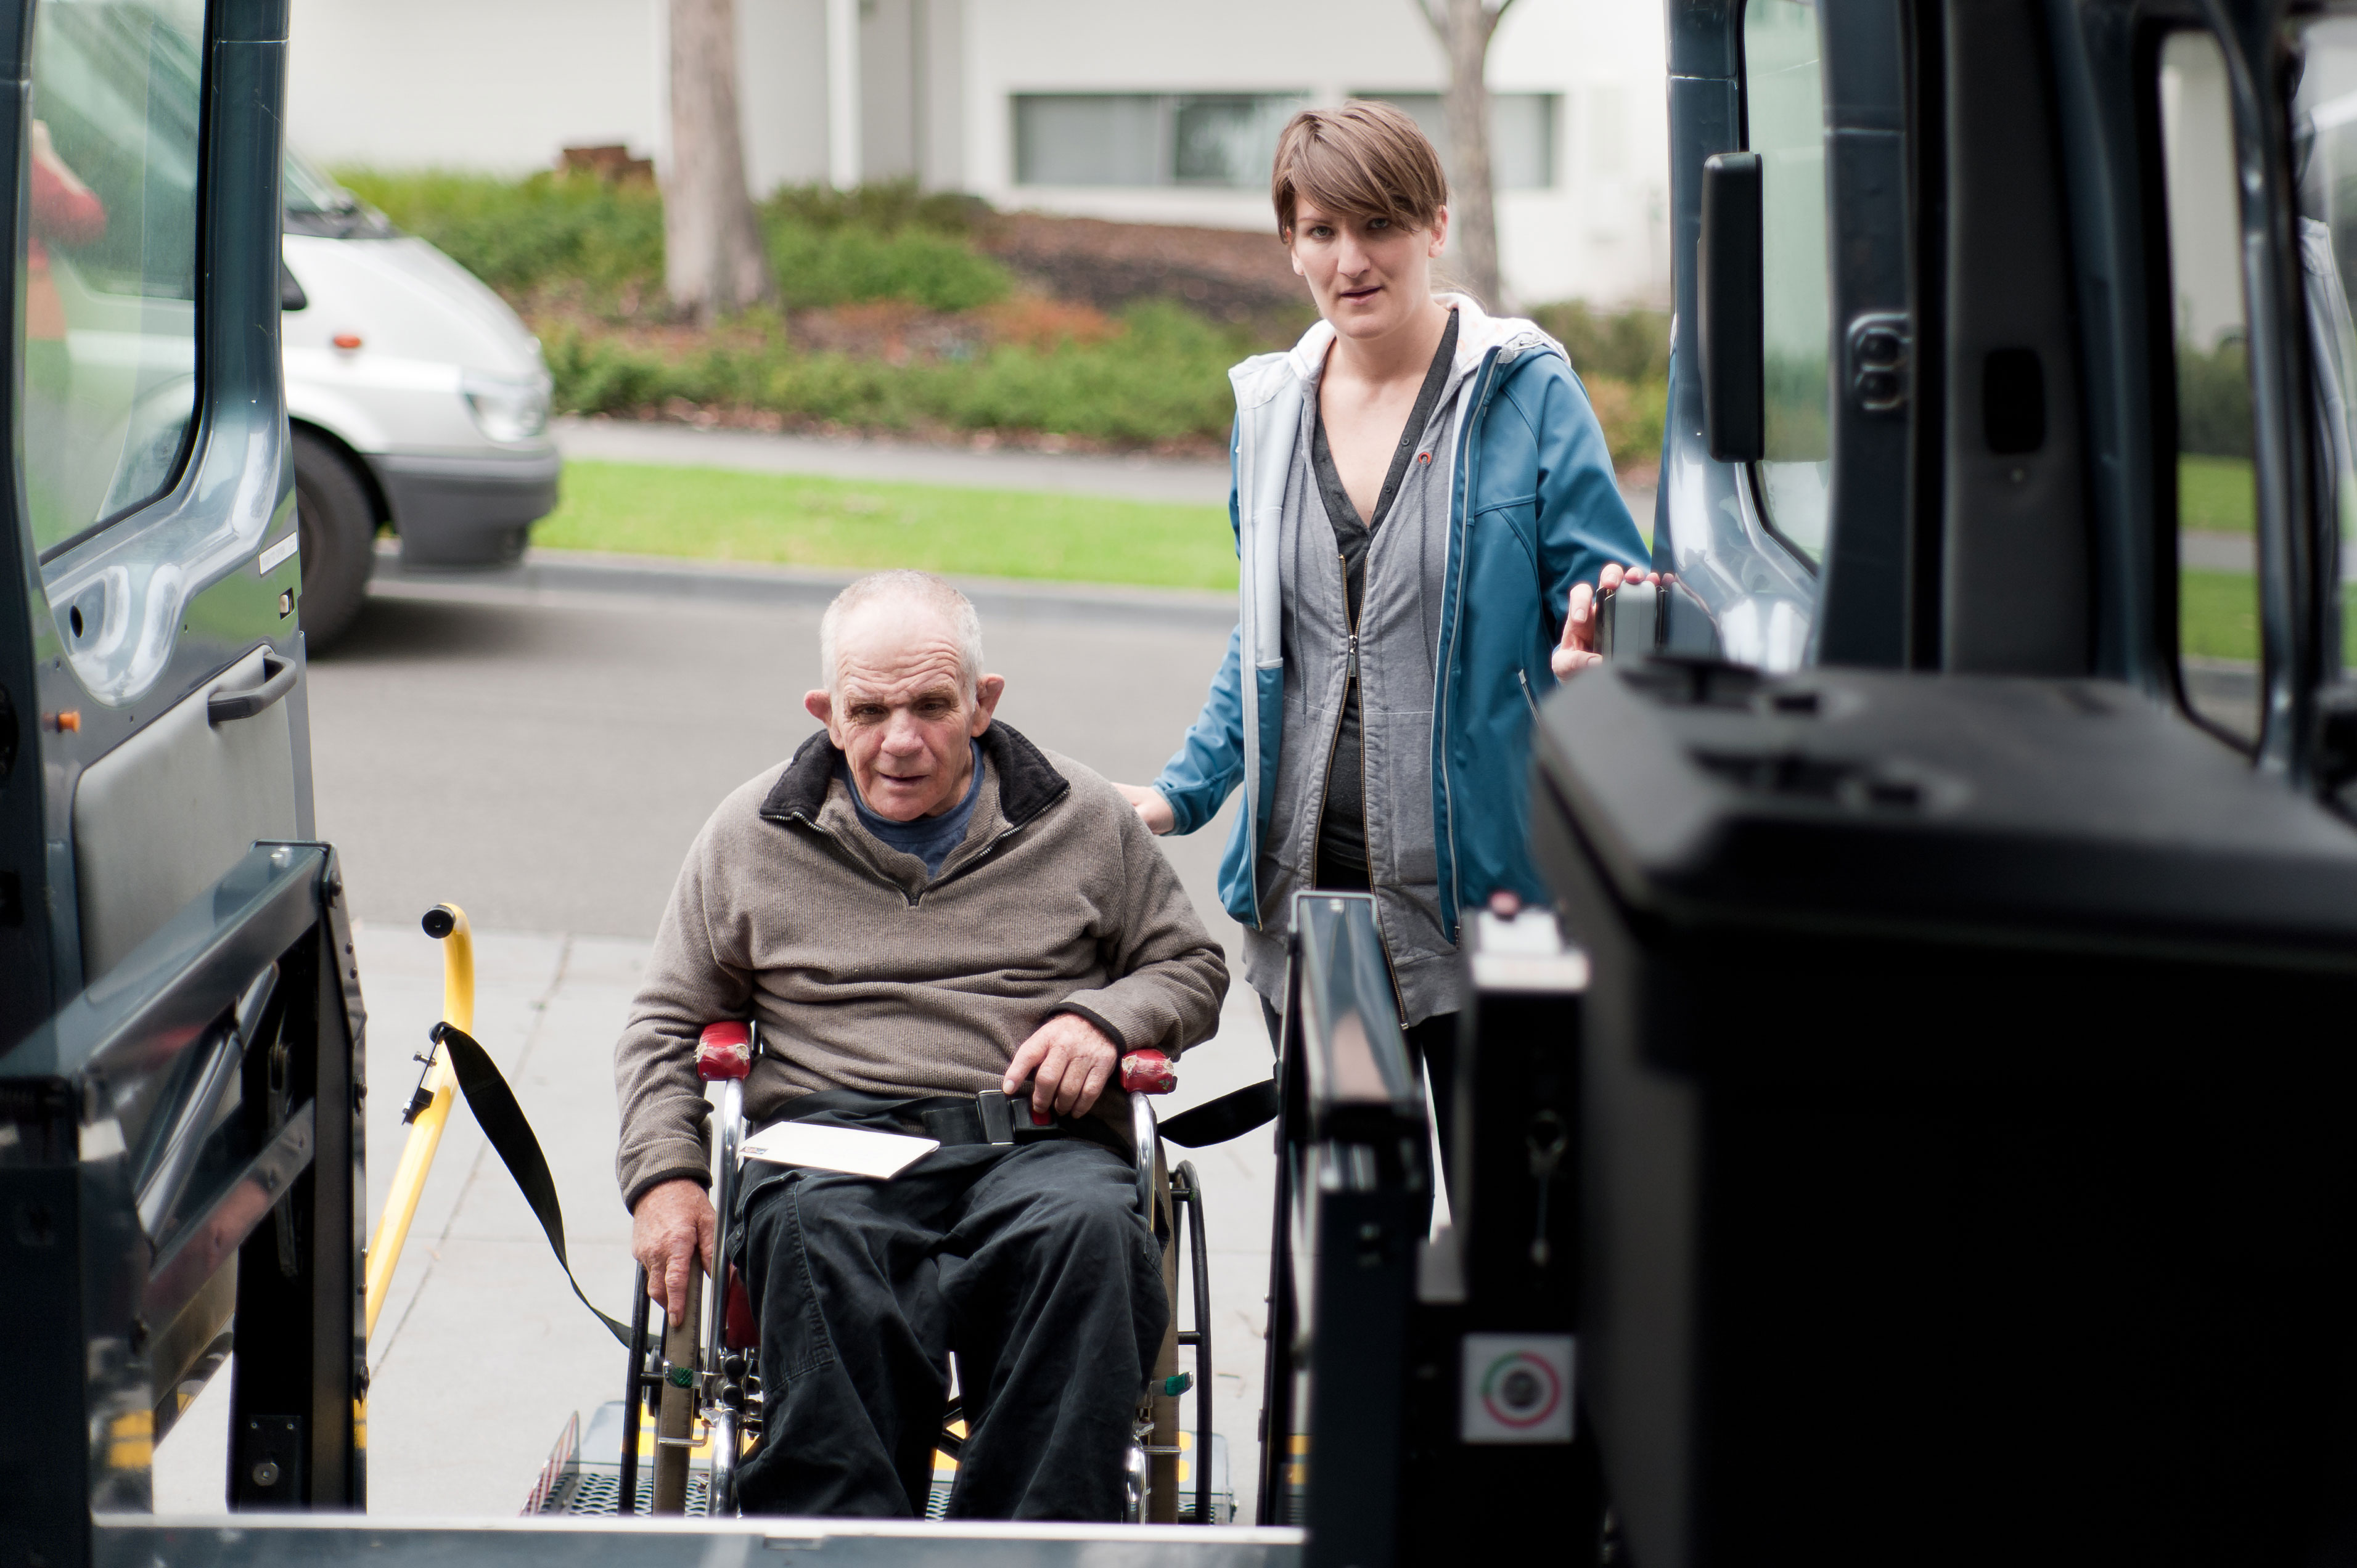 adult with disabilities receiving transportation services